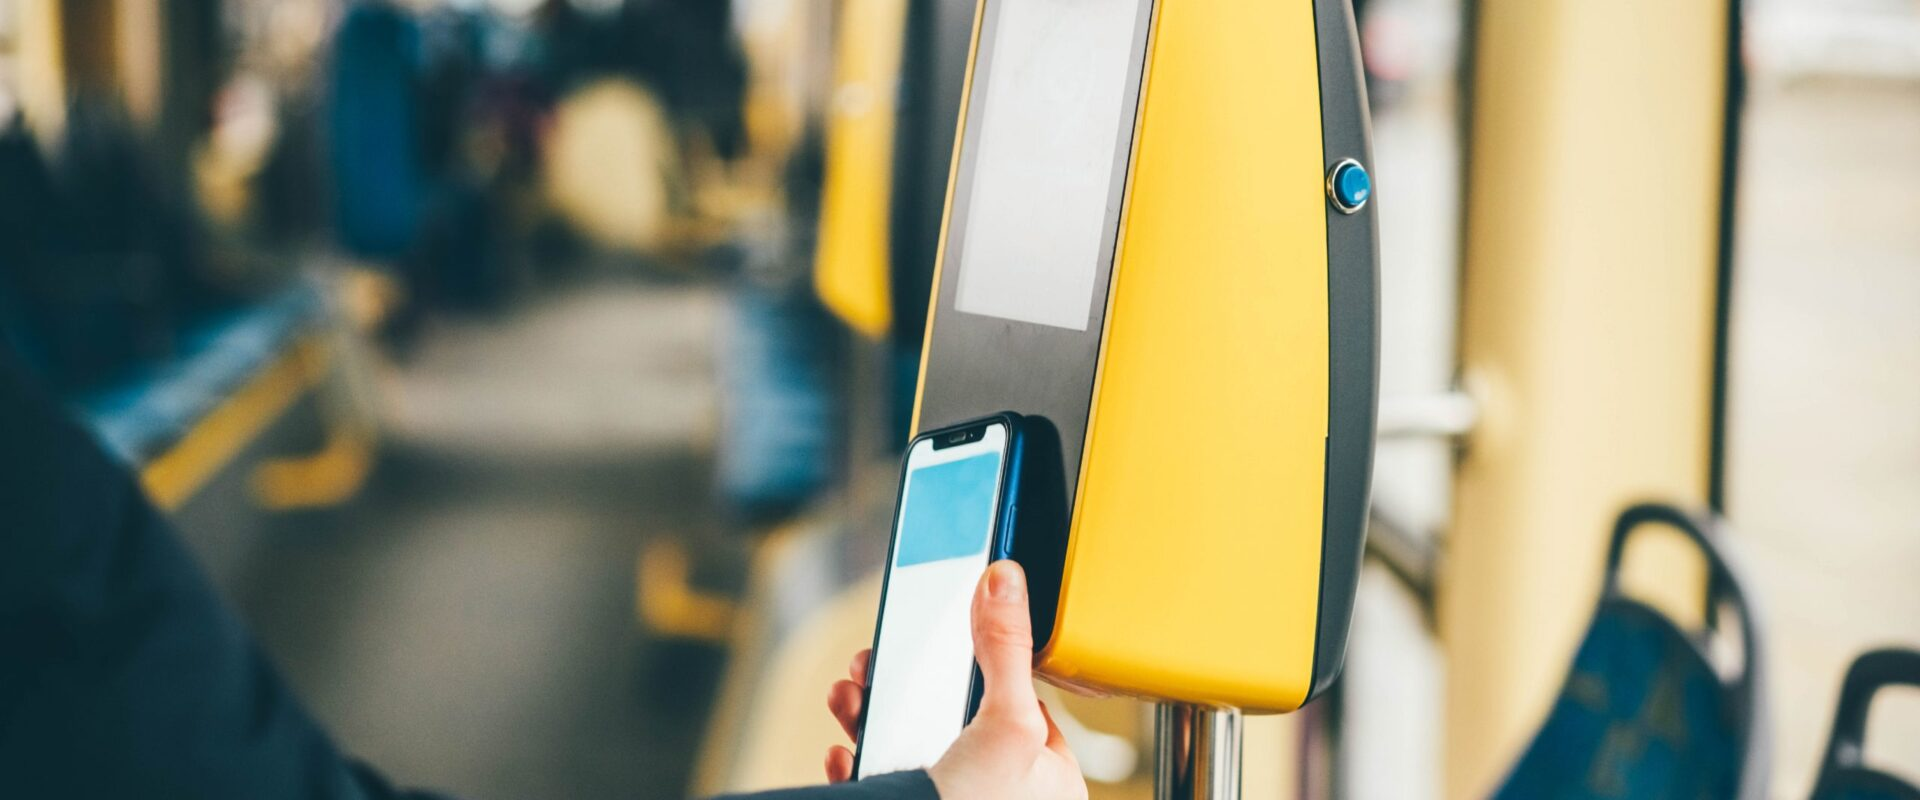 Girl paying by phone for the tram ticket. Payment by phone.